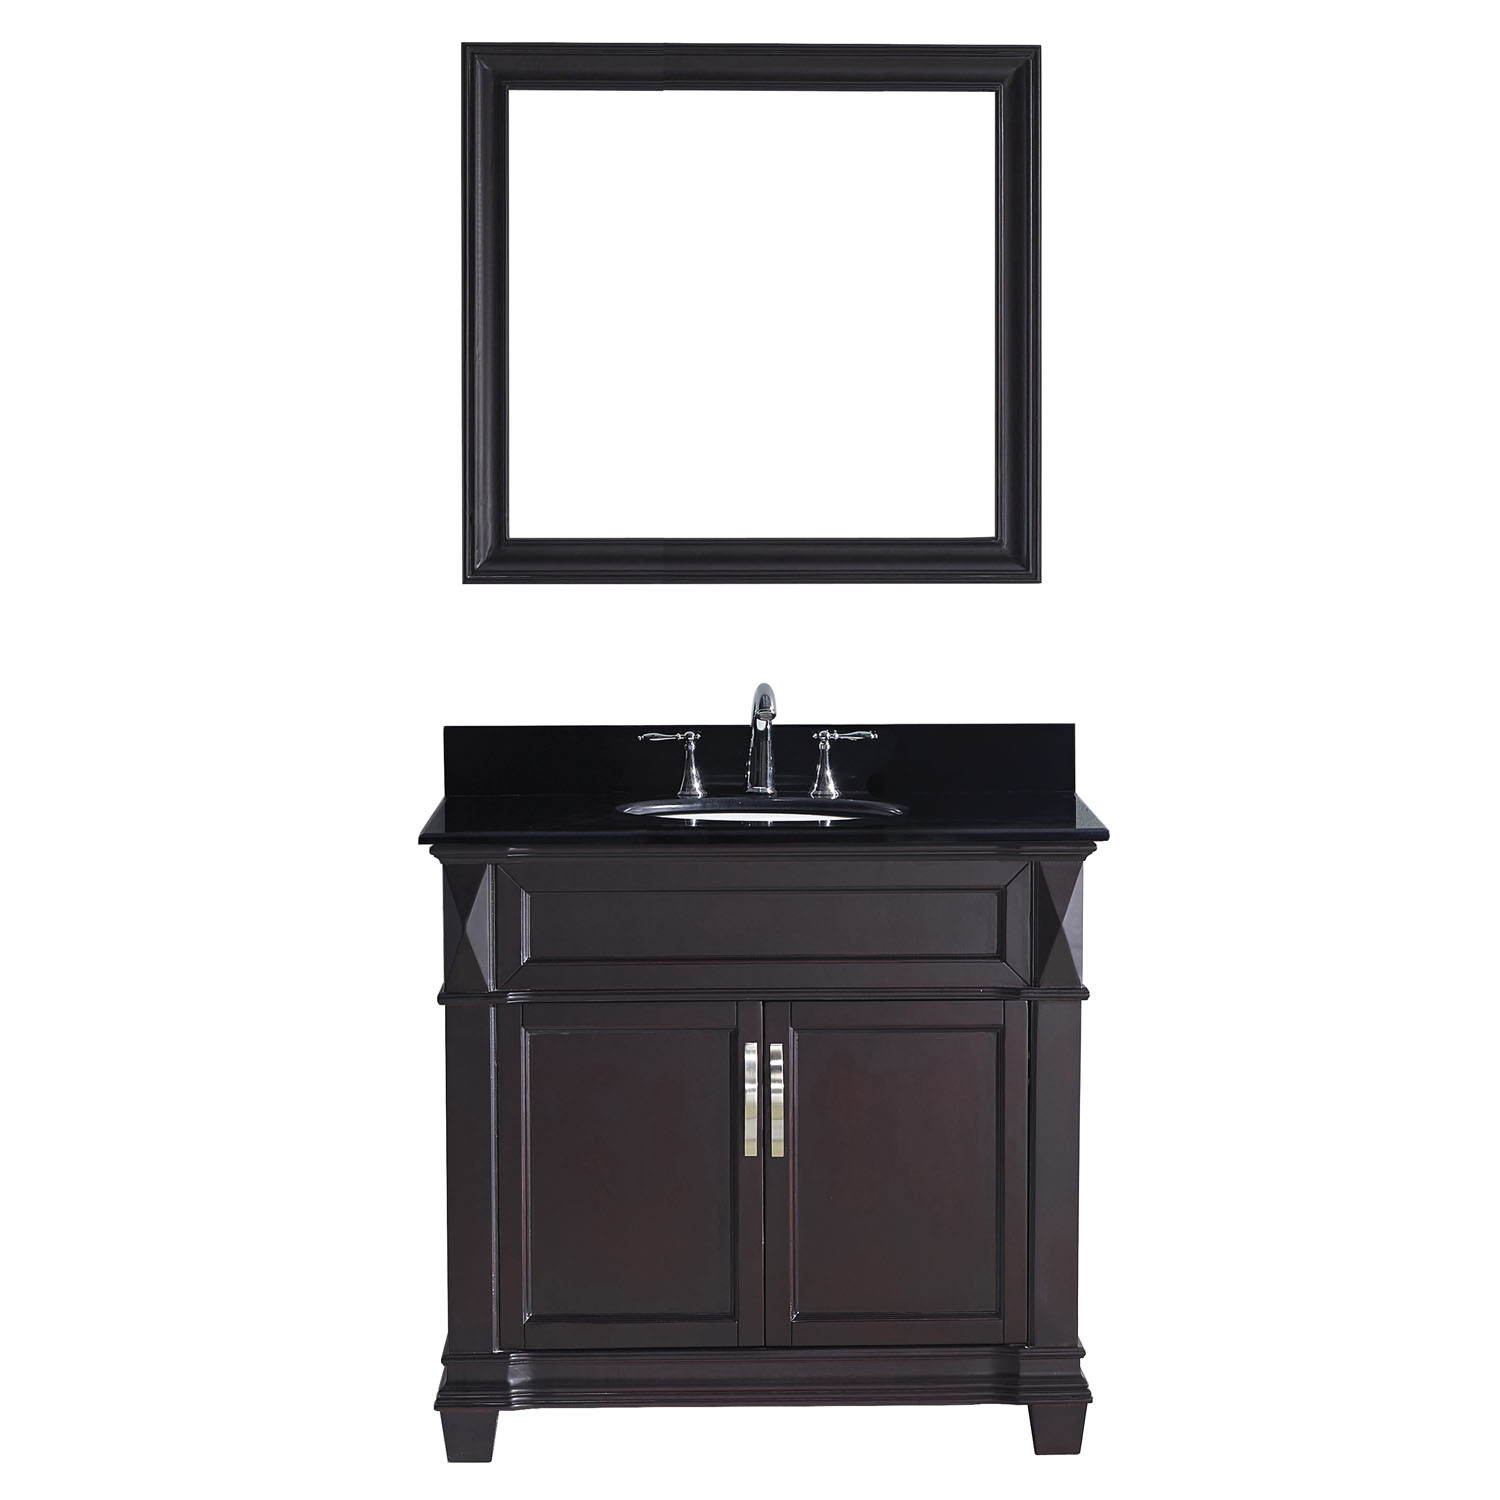 Virtu MS-2636-BGRO Victoria 36 Inch Single Bathroom Vanity Set